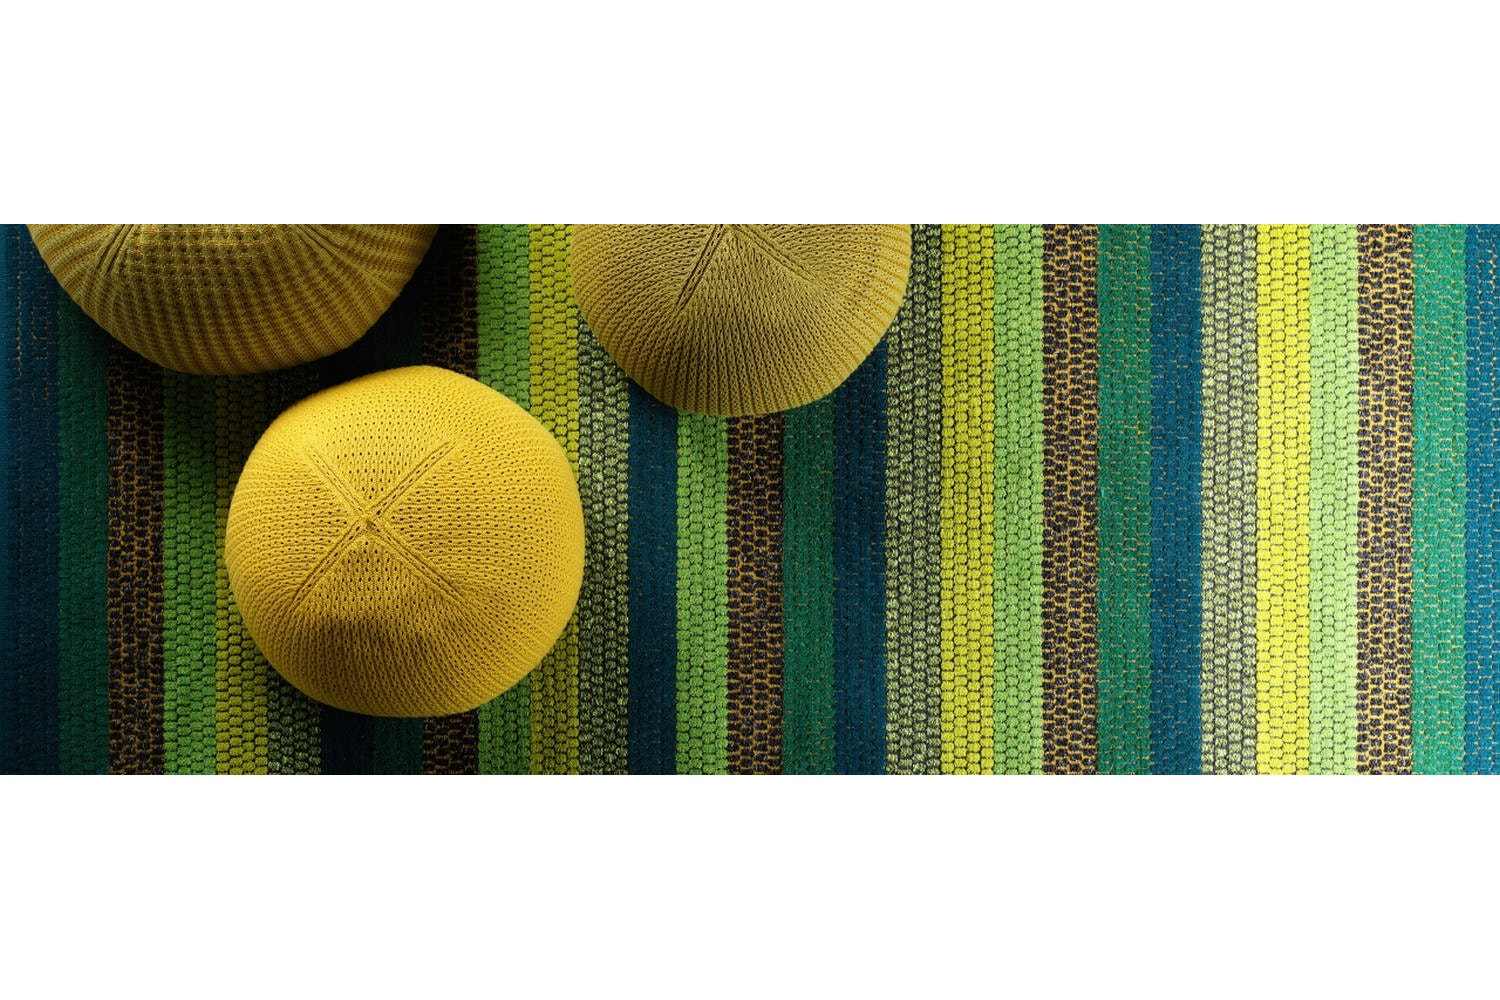 Happy Woven Rug by Gunilla Lagerhem Ullberg for Kasthall